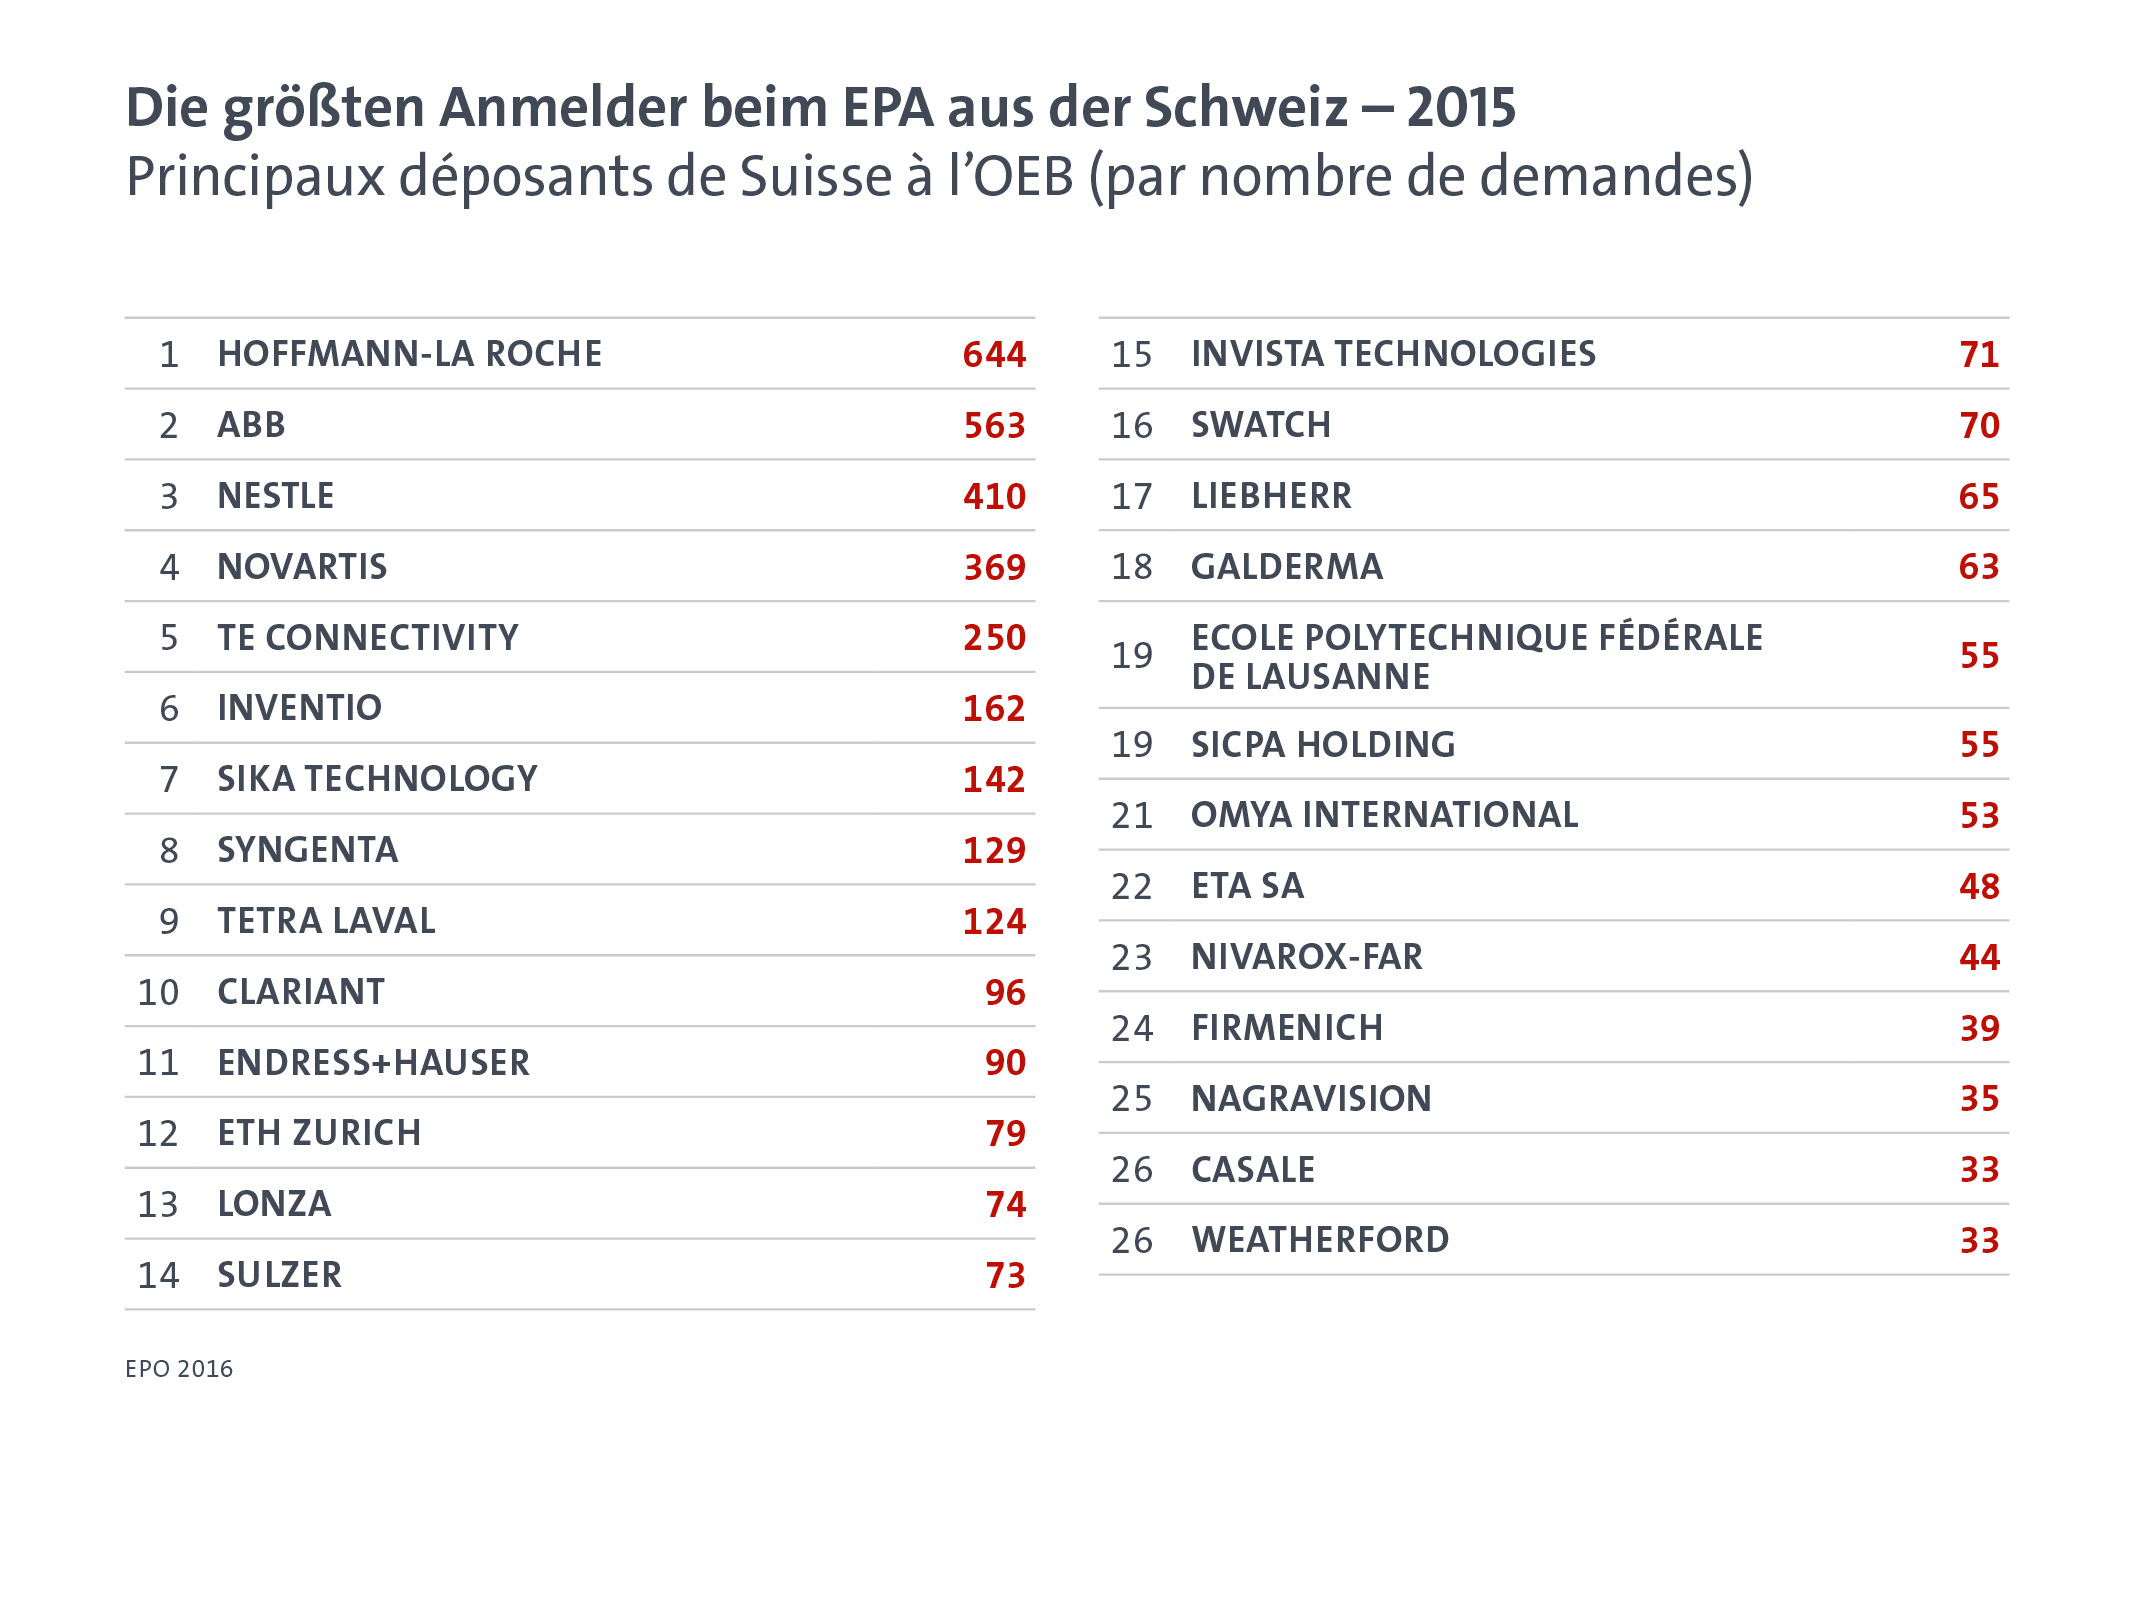 Switzerland: Top applicants at the EPO in 2015